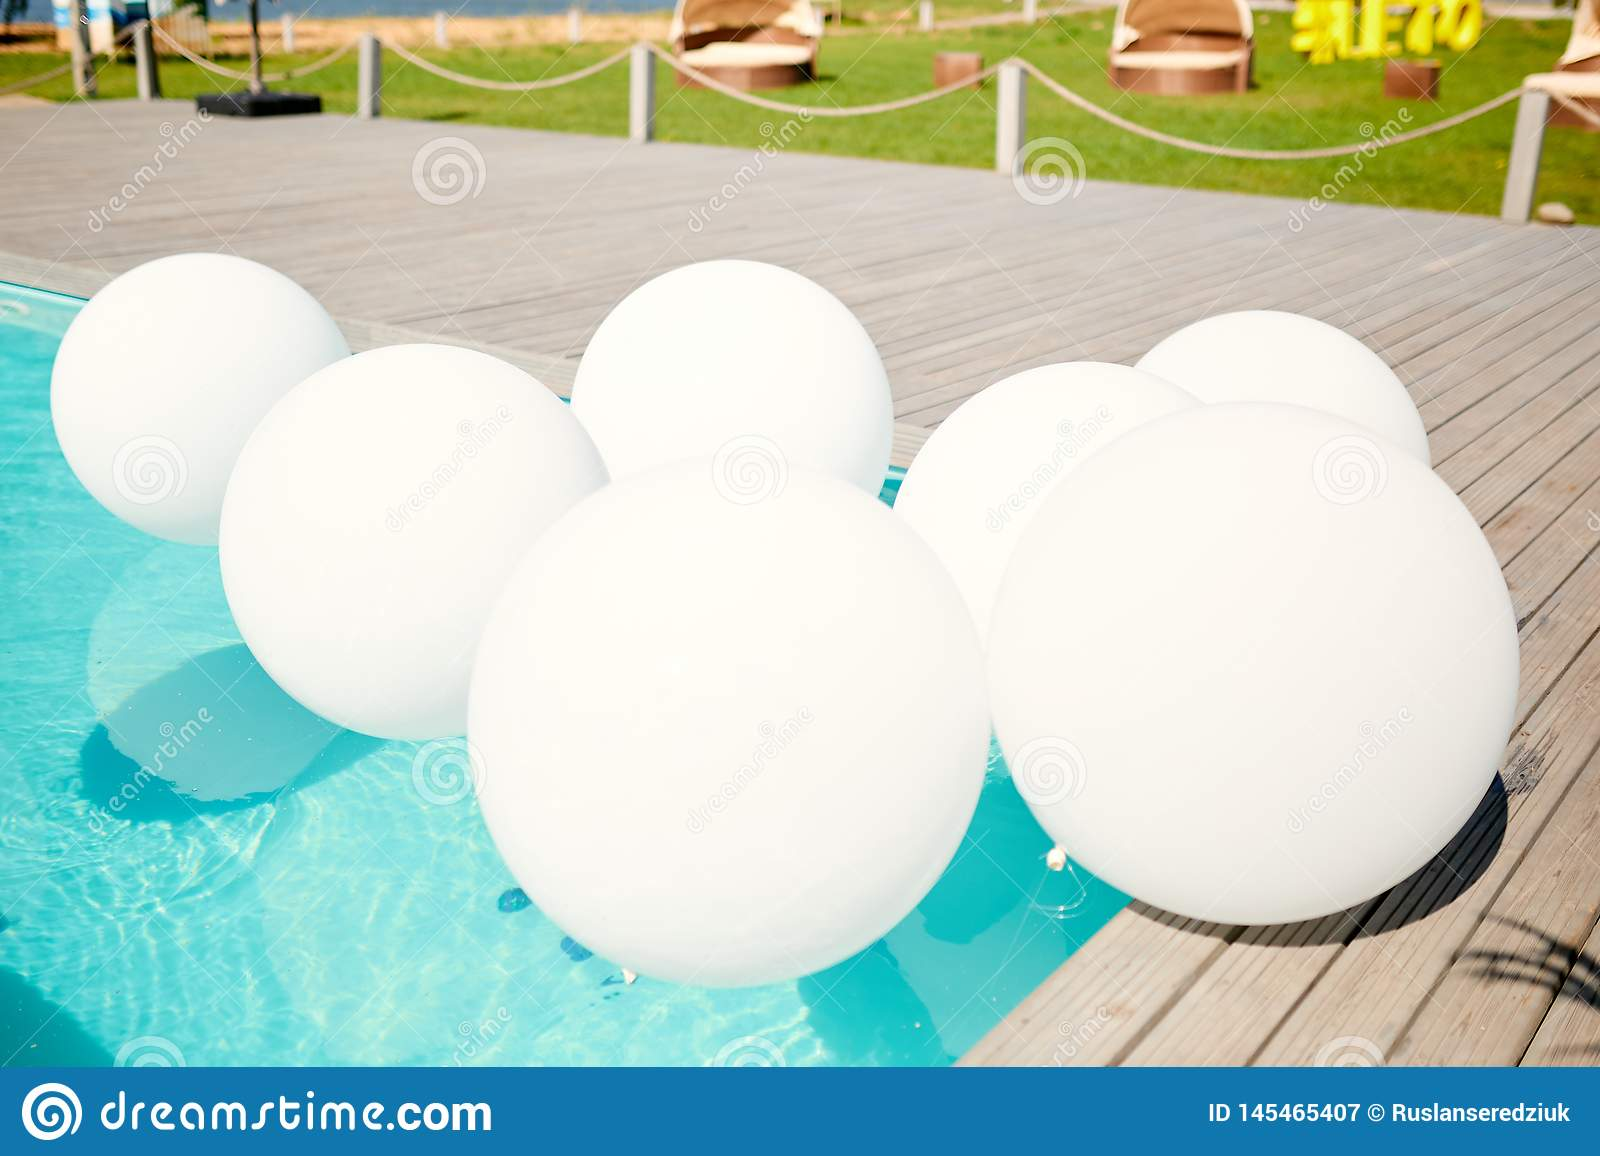 White balloons in the pool with clear water